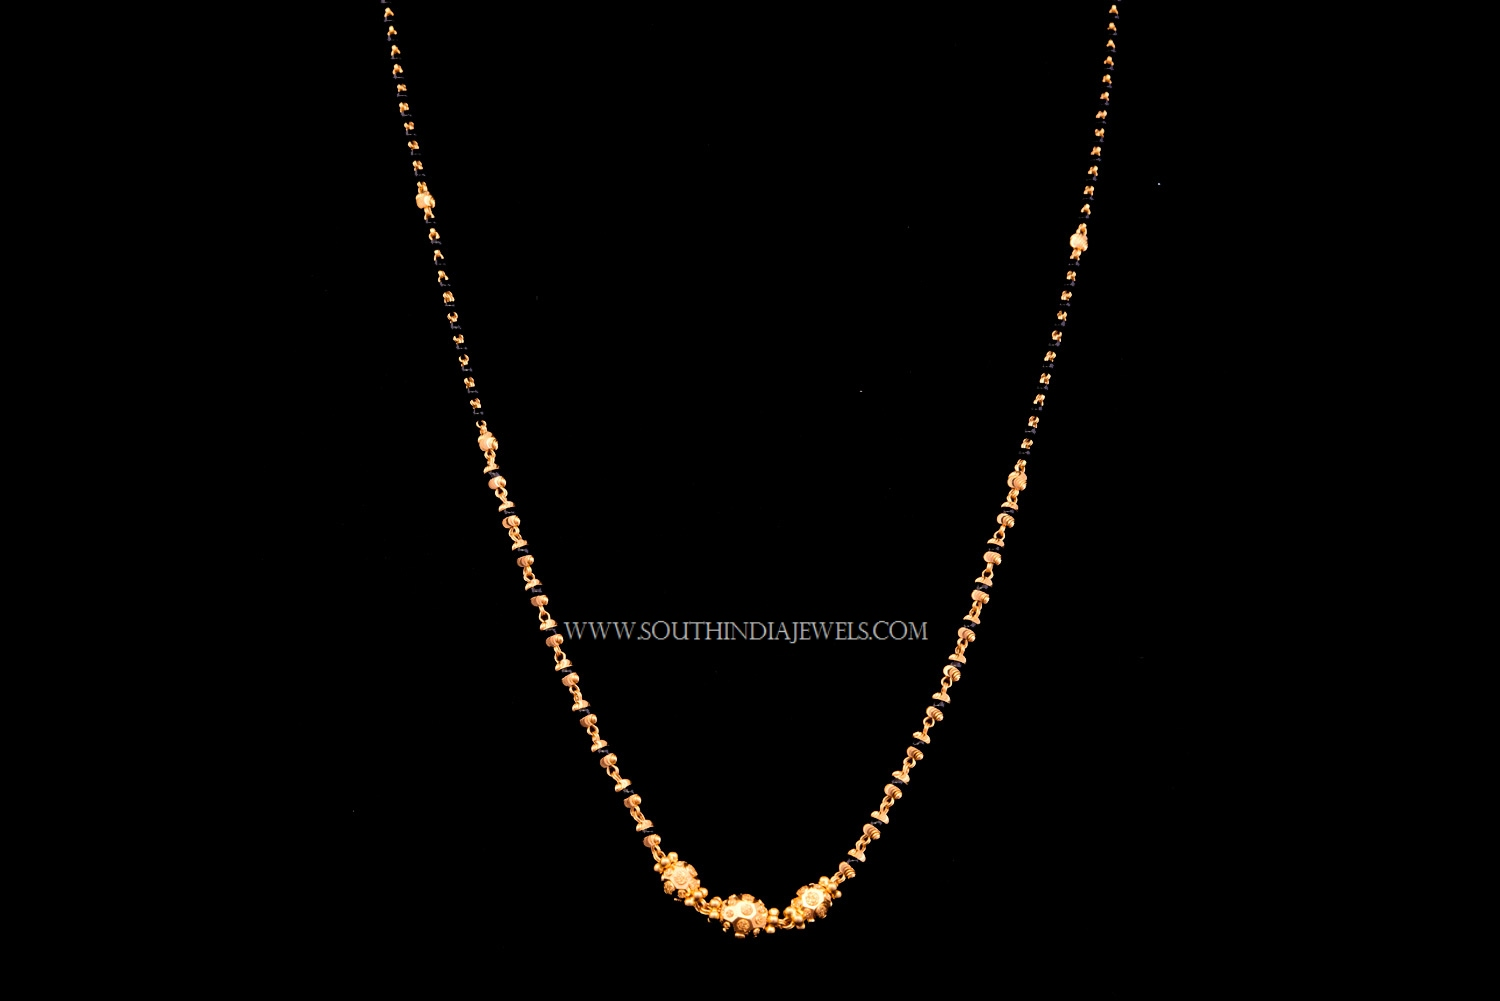 handmade fine gold beads necklaces handsome jewellery online simply svtm with simple design necklace